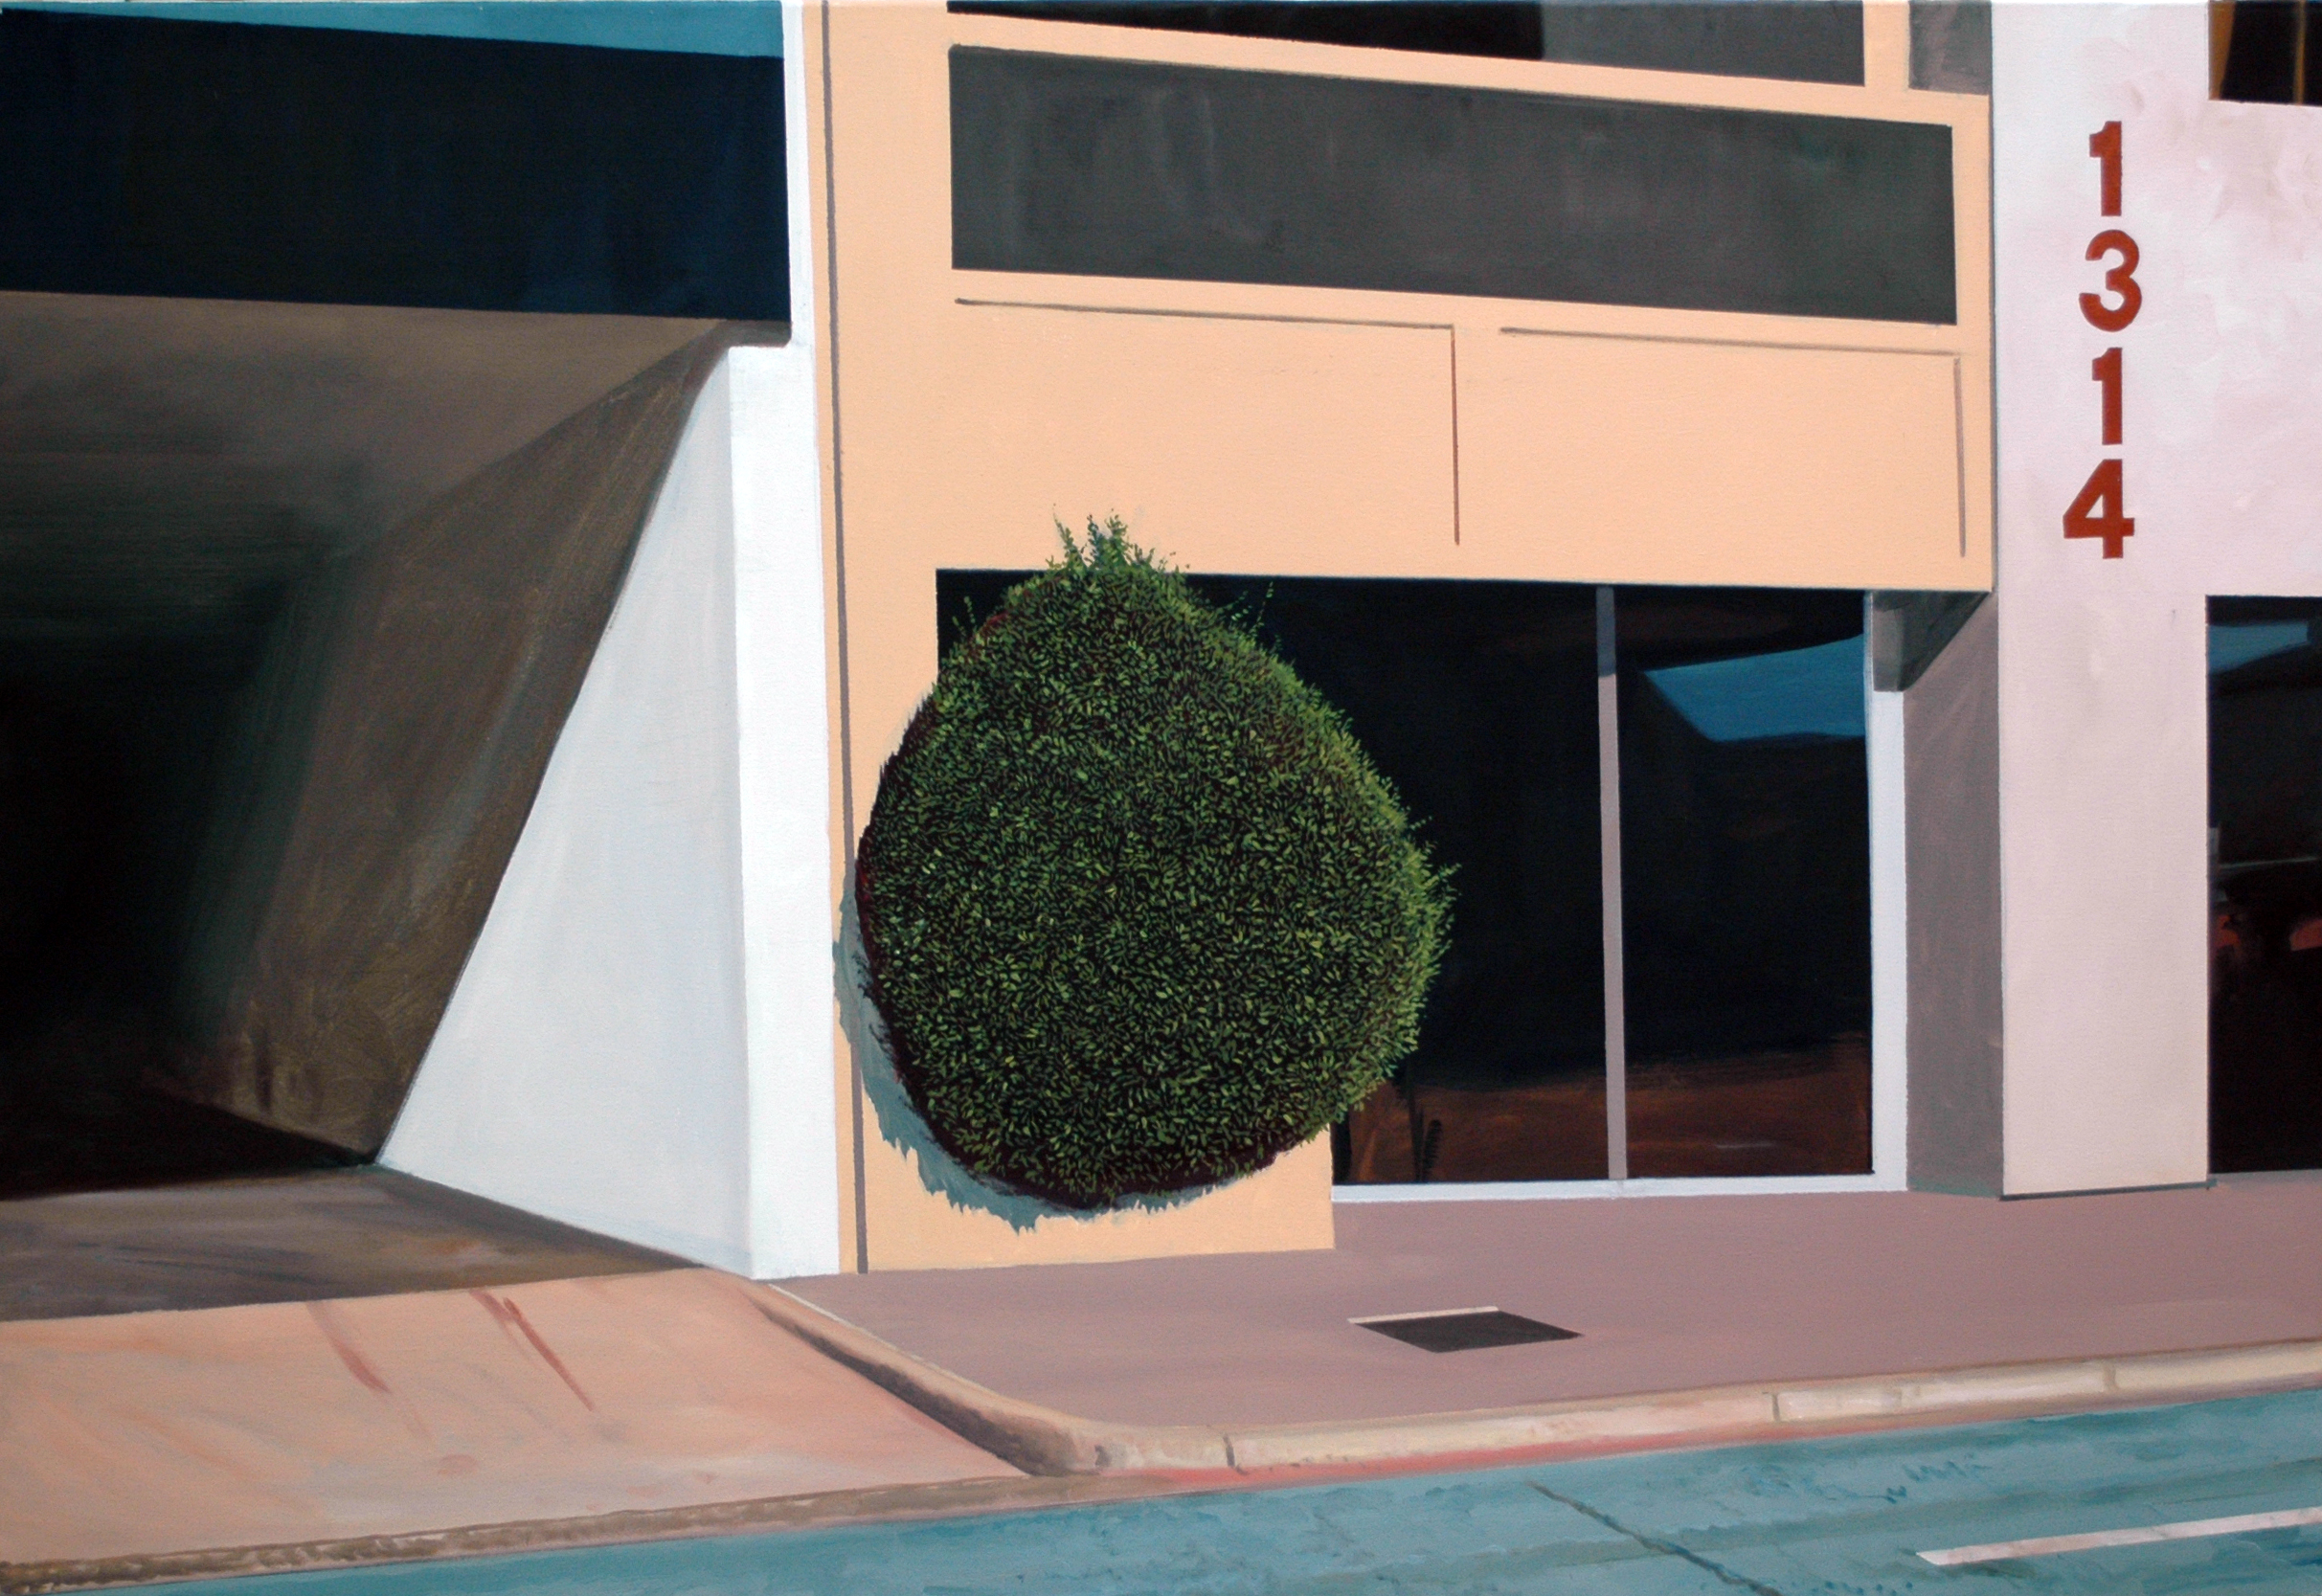 "Daniel Blagg,  Corporate Shrub,  oil on canvas, 36 x 52"" $9,500.  Contact Artspace111 to purchase."